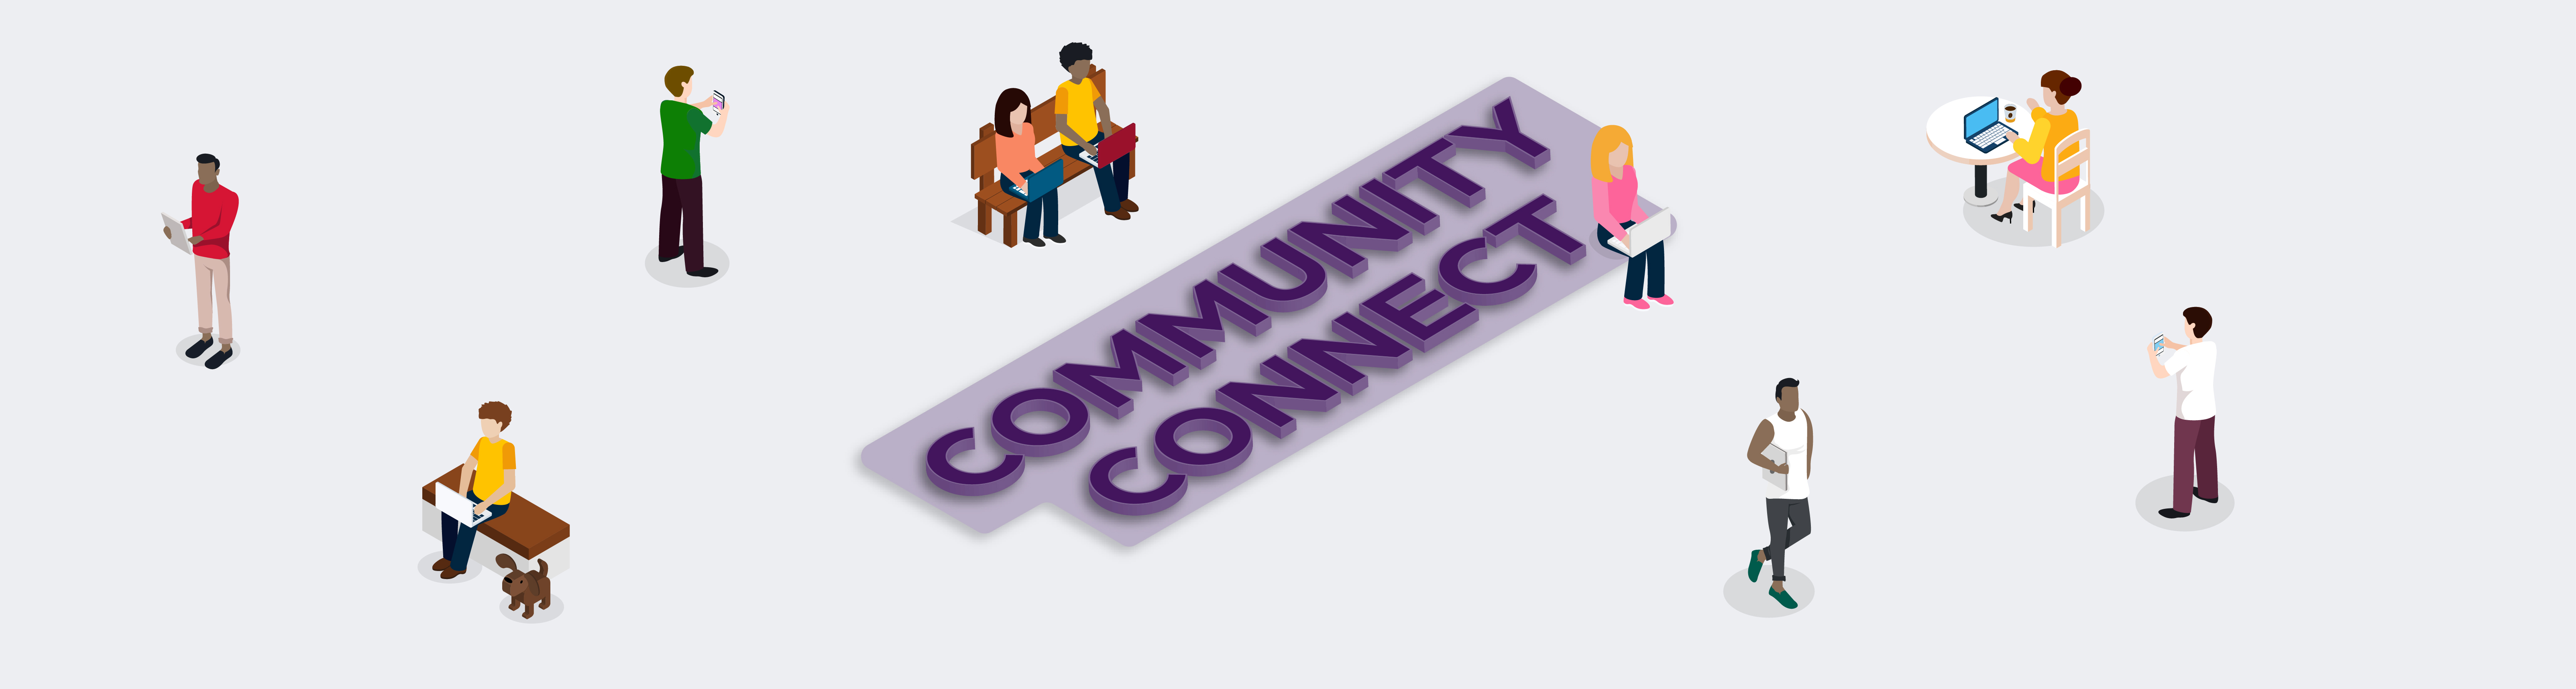 community_connect